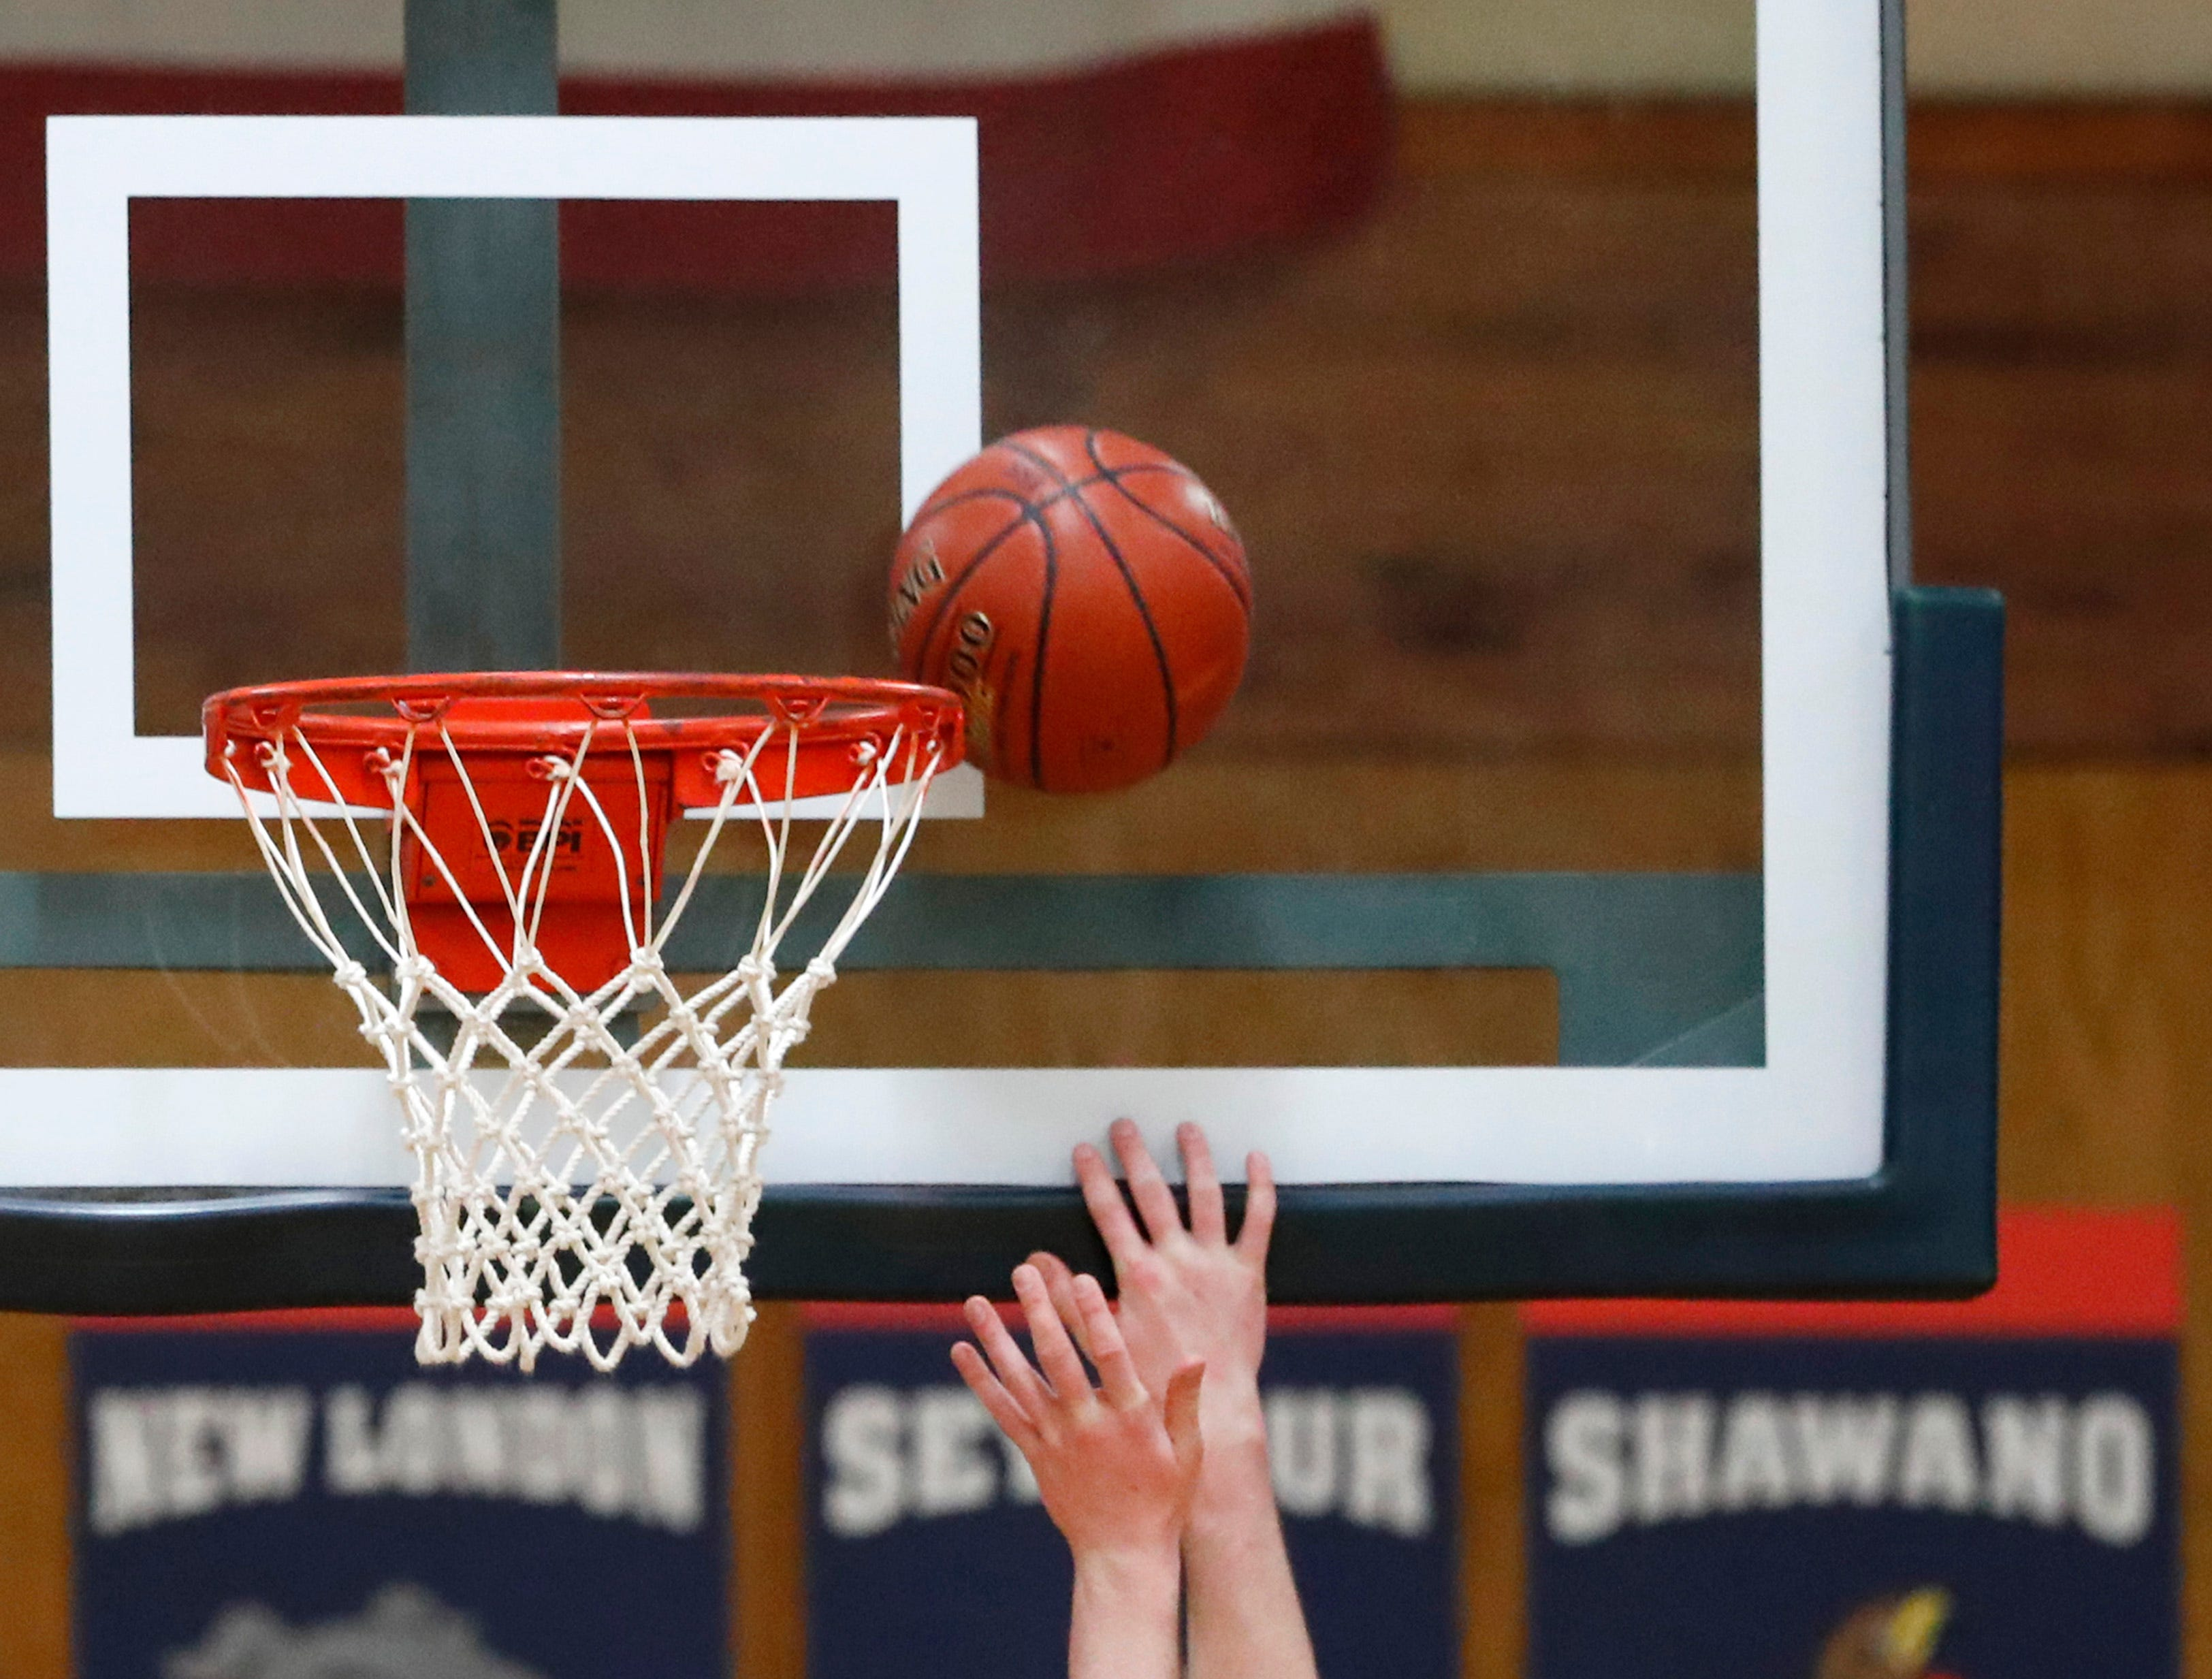 Xavier High SchoolÕs Nick Otto goes for a layup against Seymour High School Friday, Feb. 8, 2019, in Appleton, Wis. Xavier High School defeated Seymour 92-50.Danny Damiani/USA TODAY NETWORK-Wisconsin